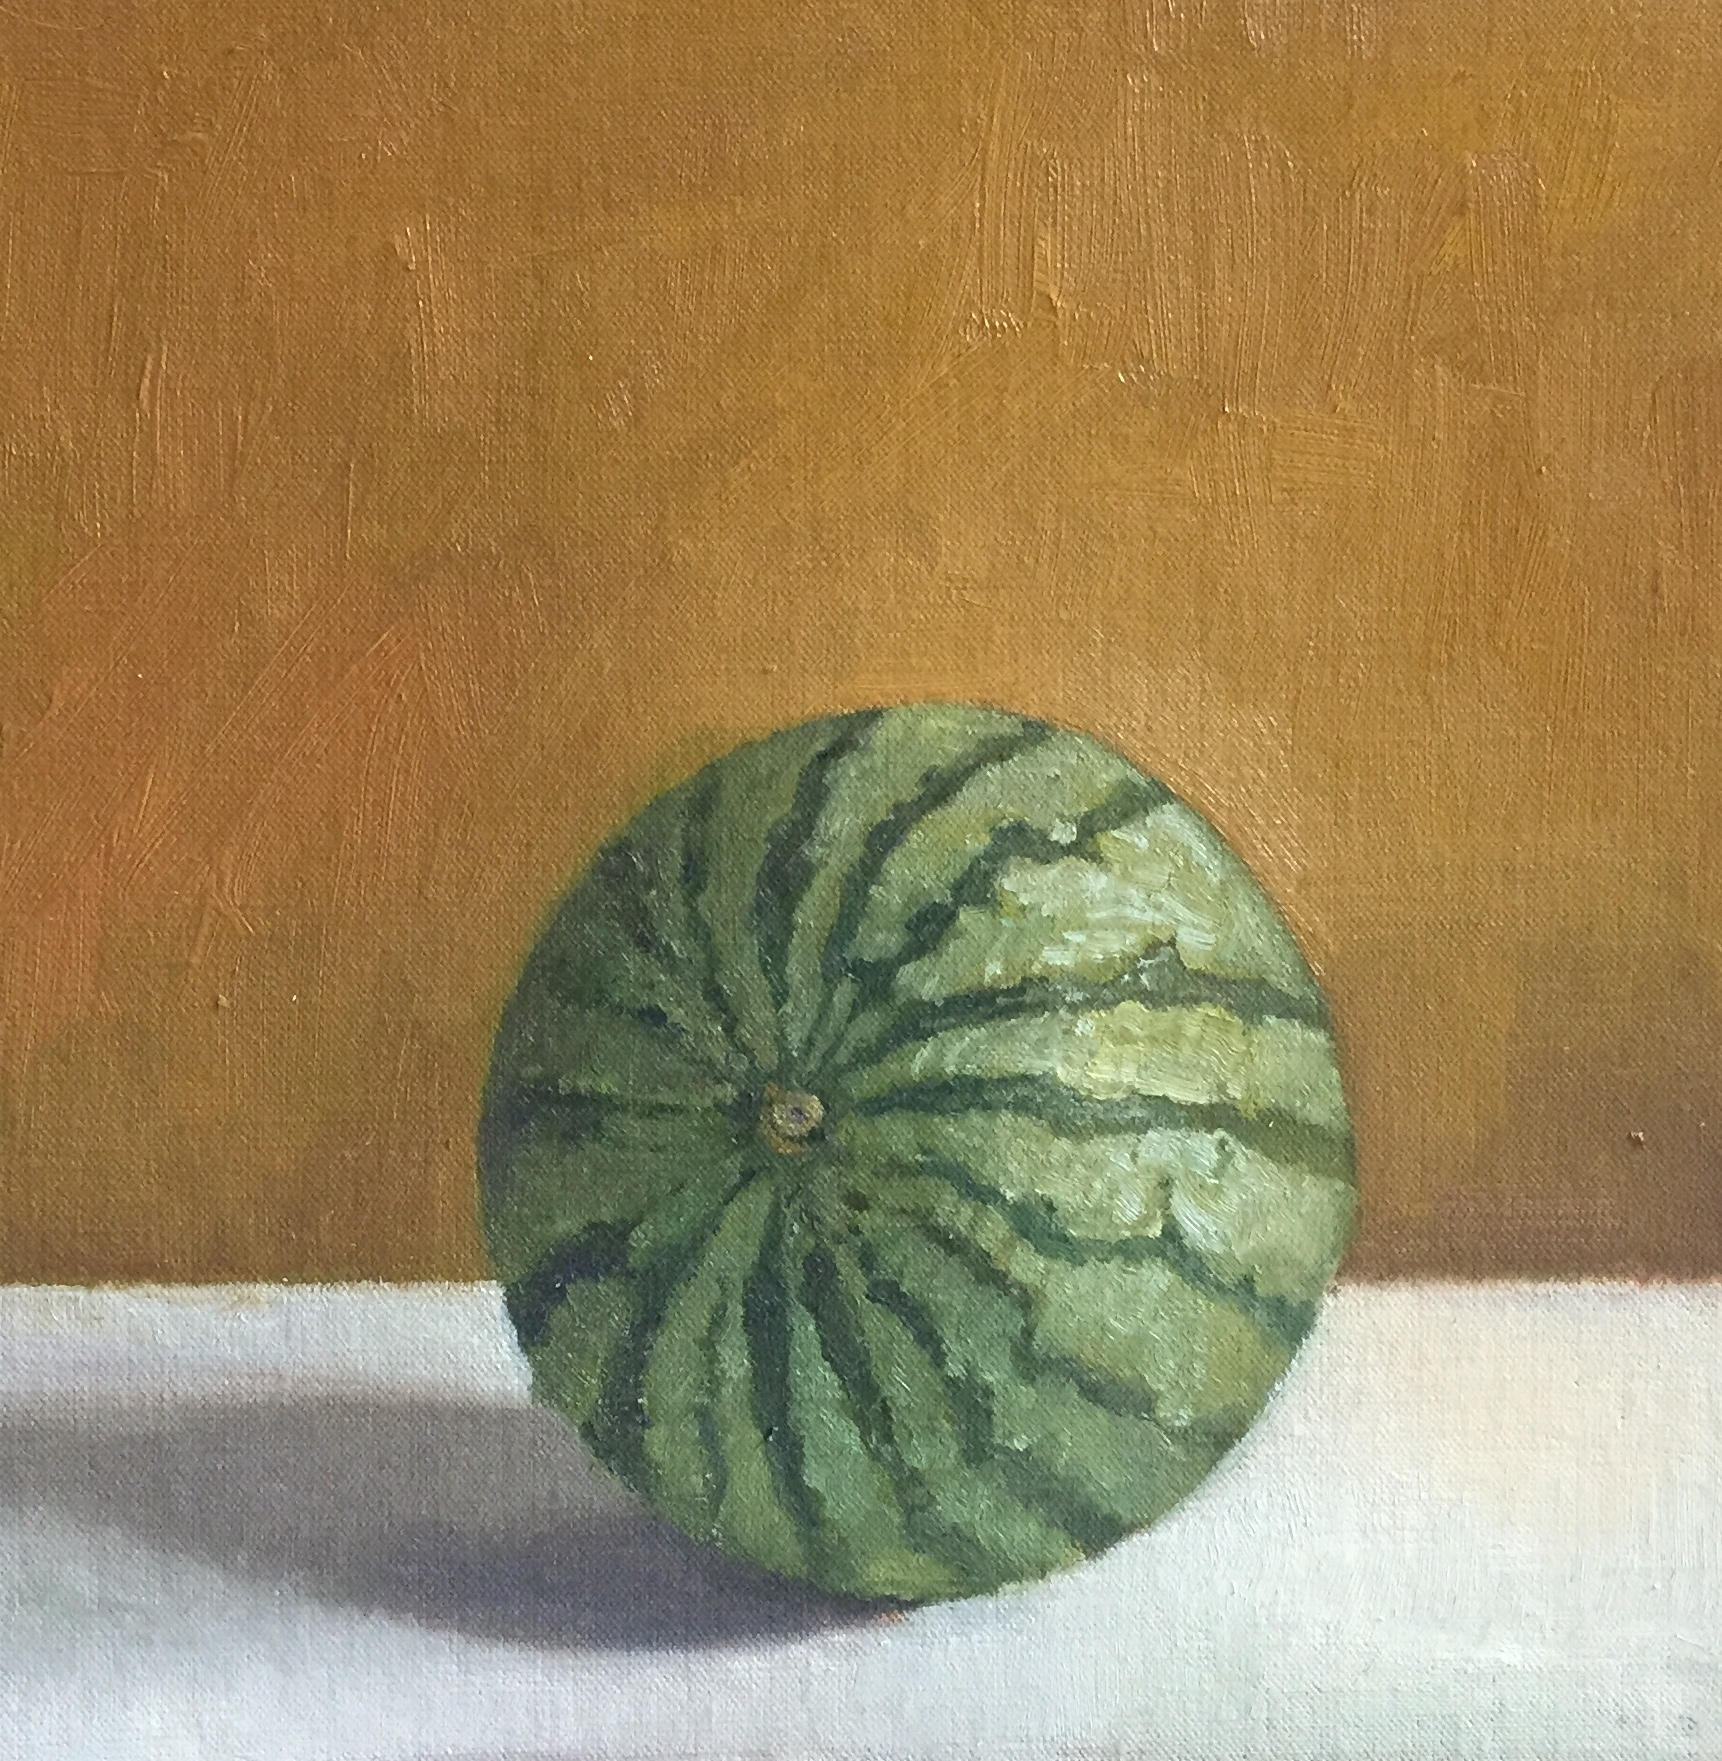 Watermelon<br>Oil on Canvas